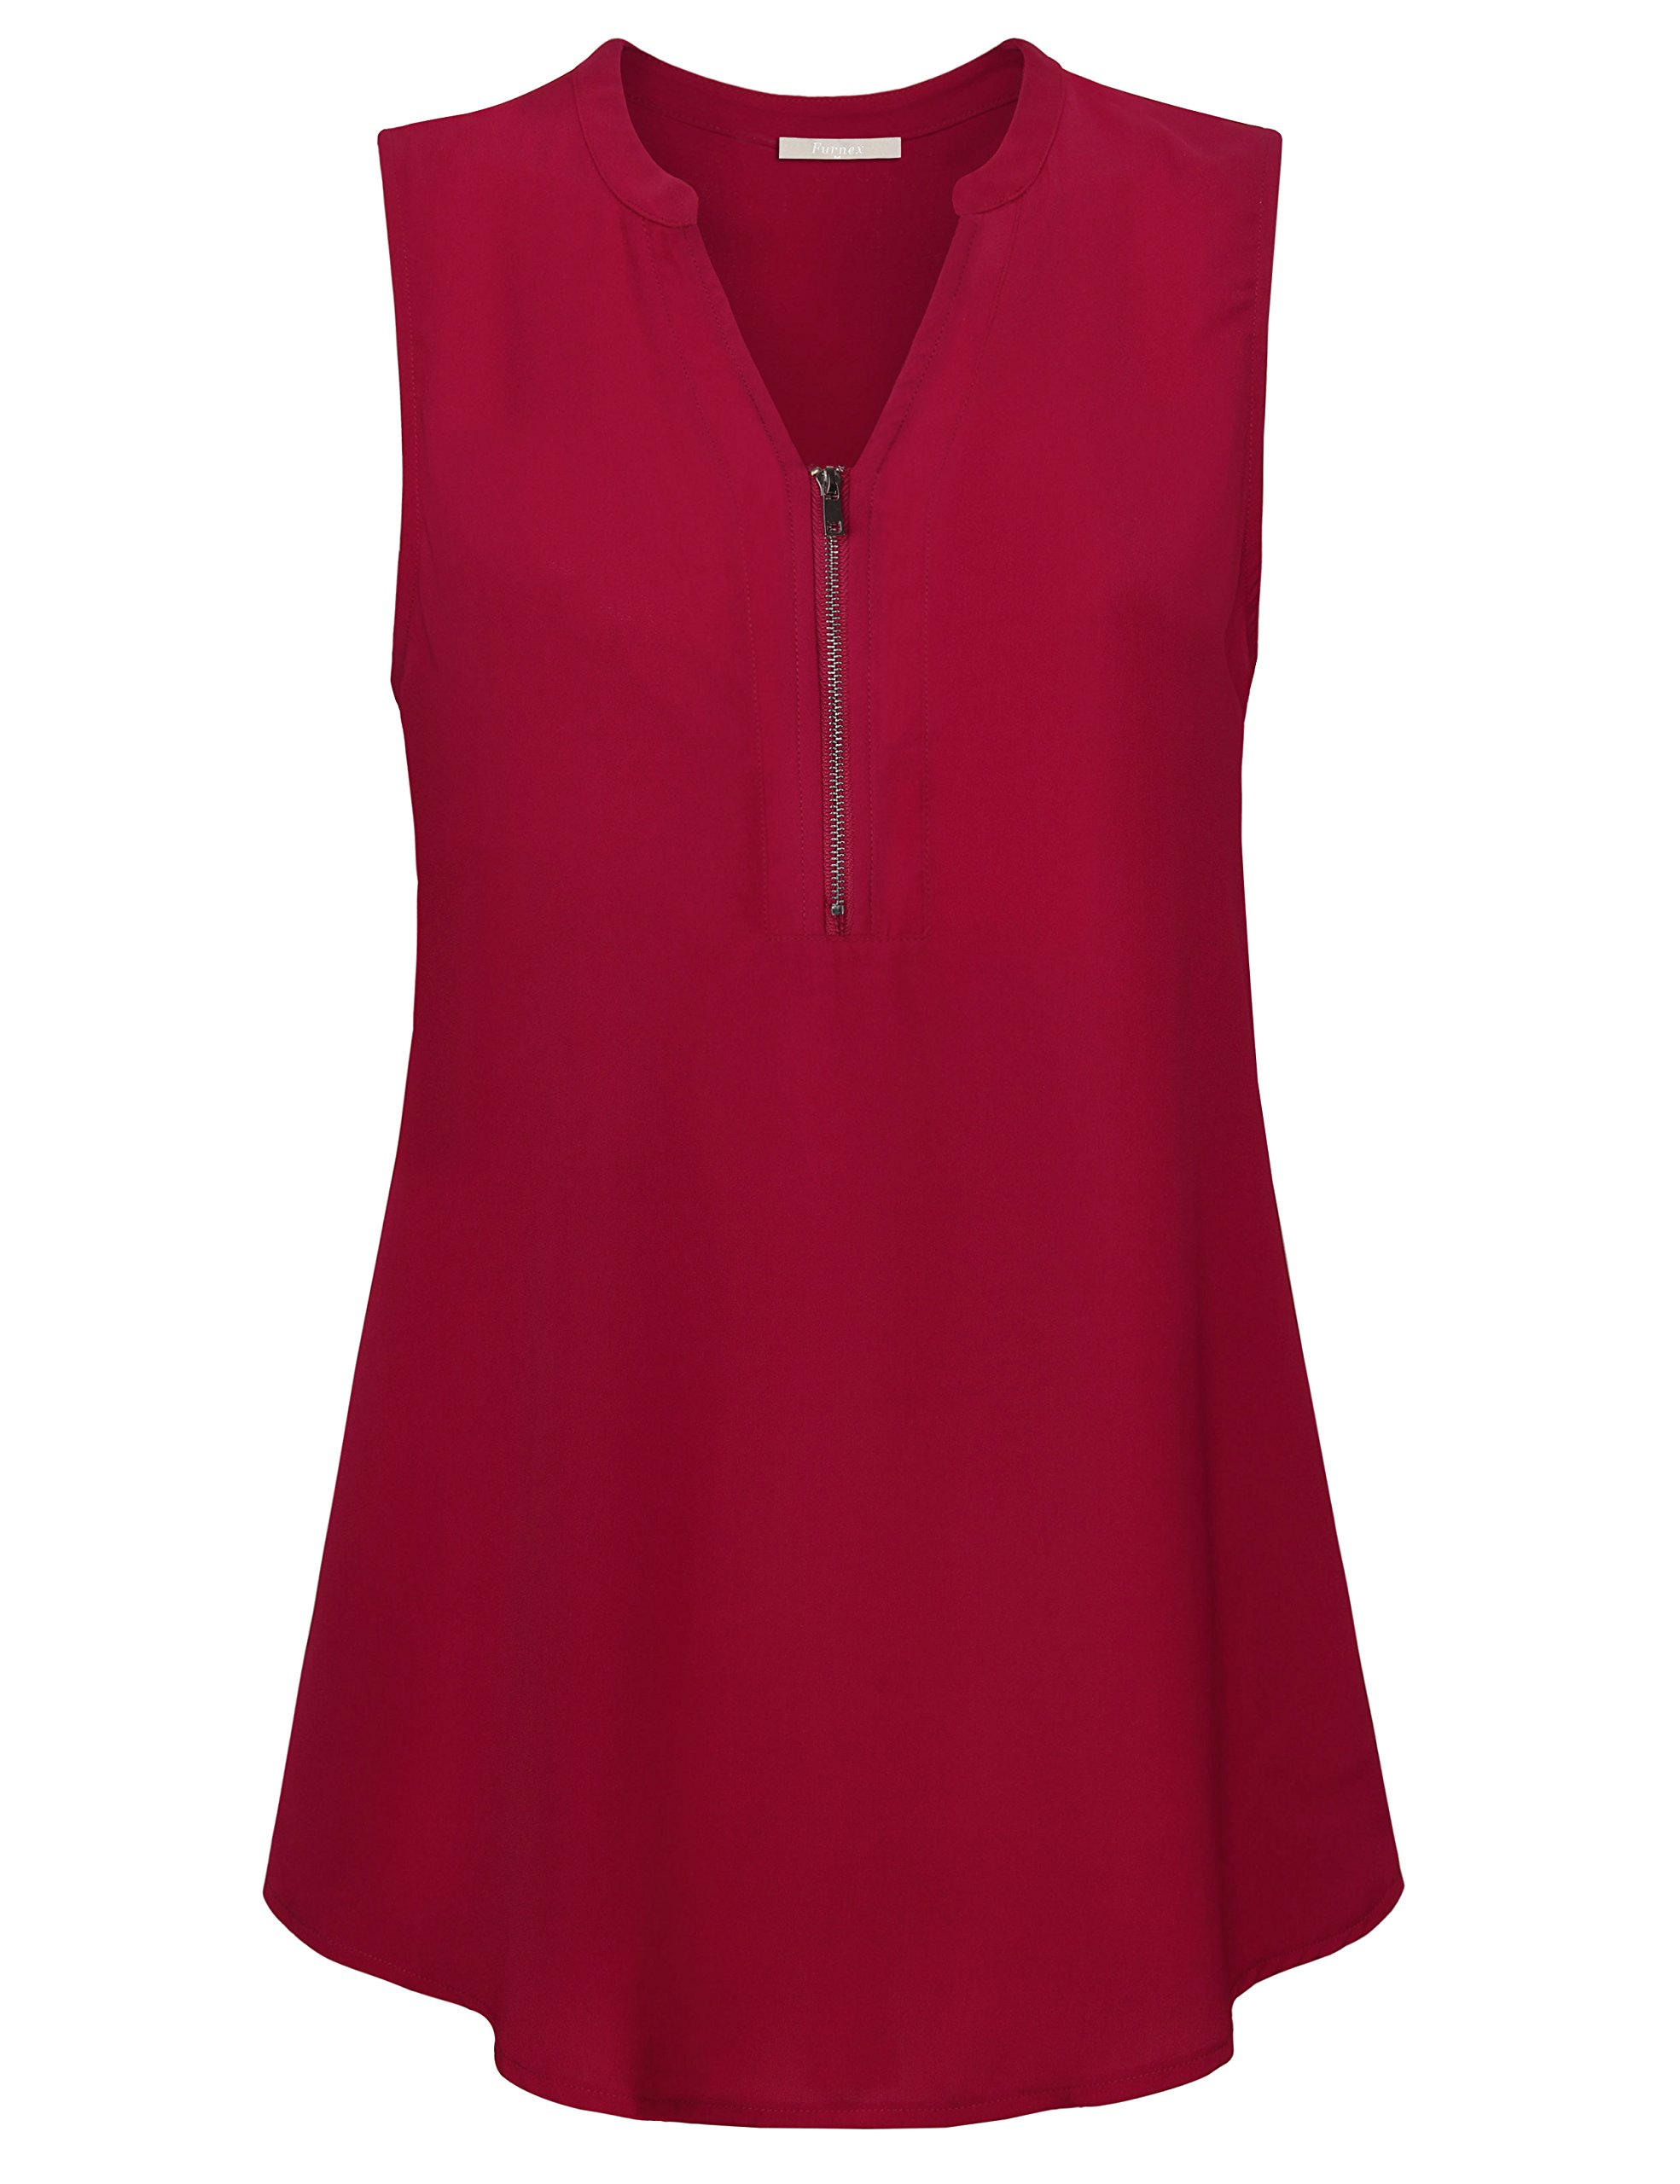 Furnex Casual Blouse for Women, Summer Blouse Tops Elegant V Neck Loose Relaxed Fit Chiffon Tunic for Legging(Wine,Medium)